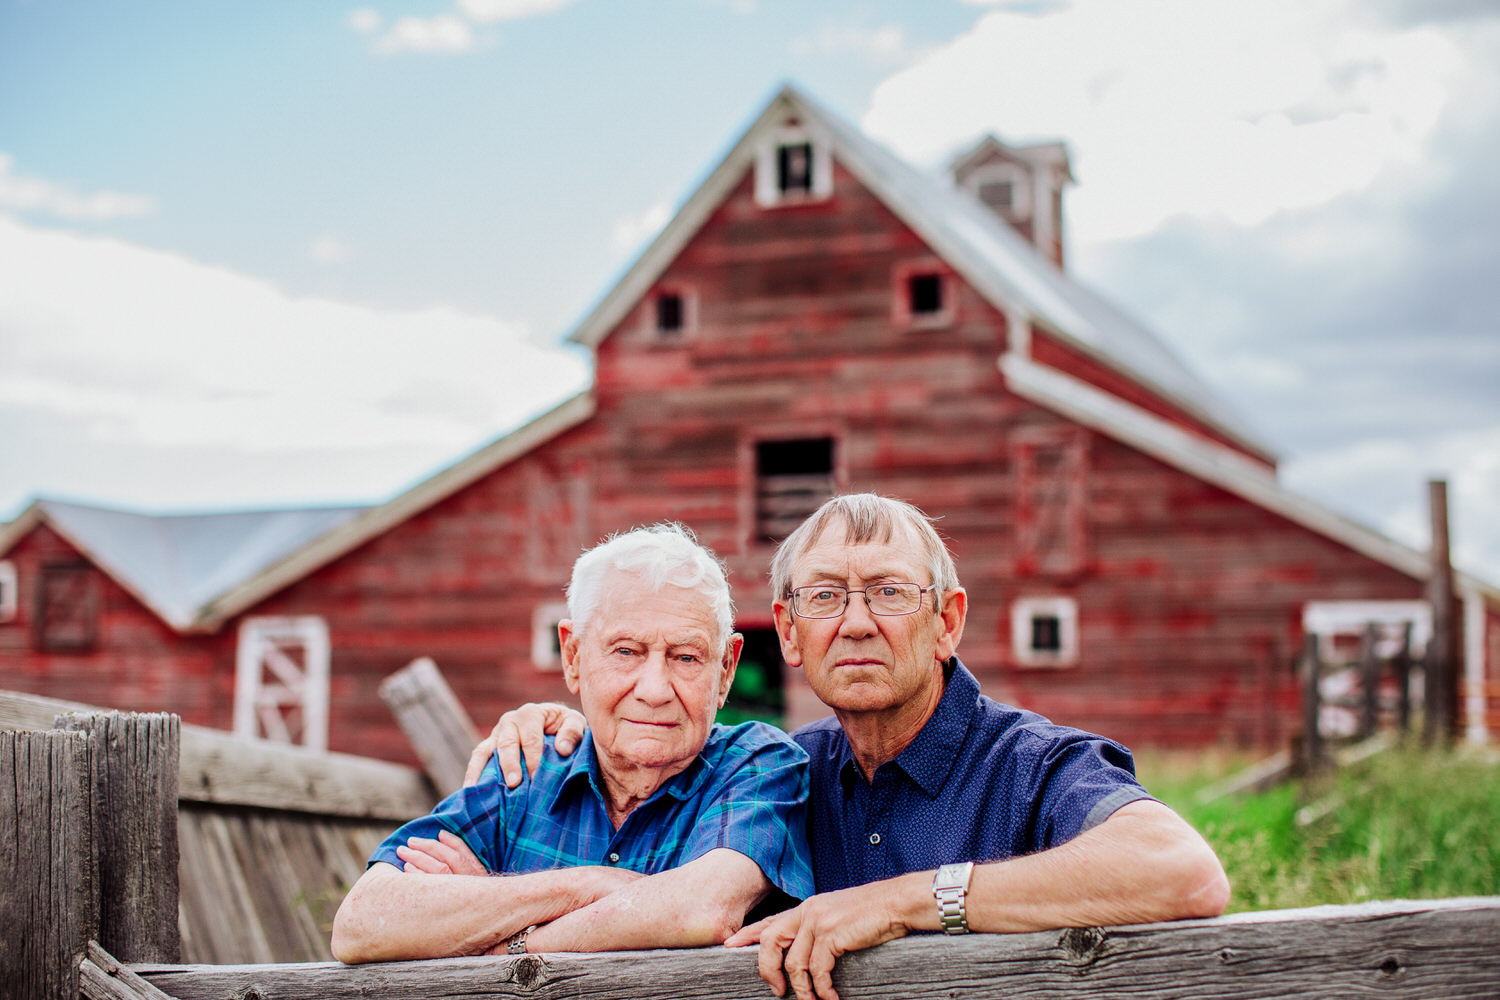 A barn near Great Falls Montana to showcase the generations of this family. Photography fulfilling its purpose.